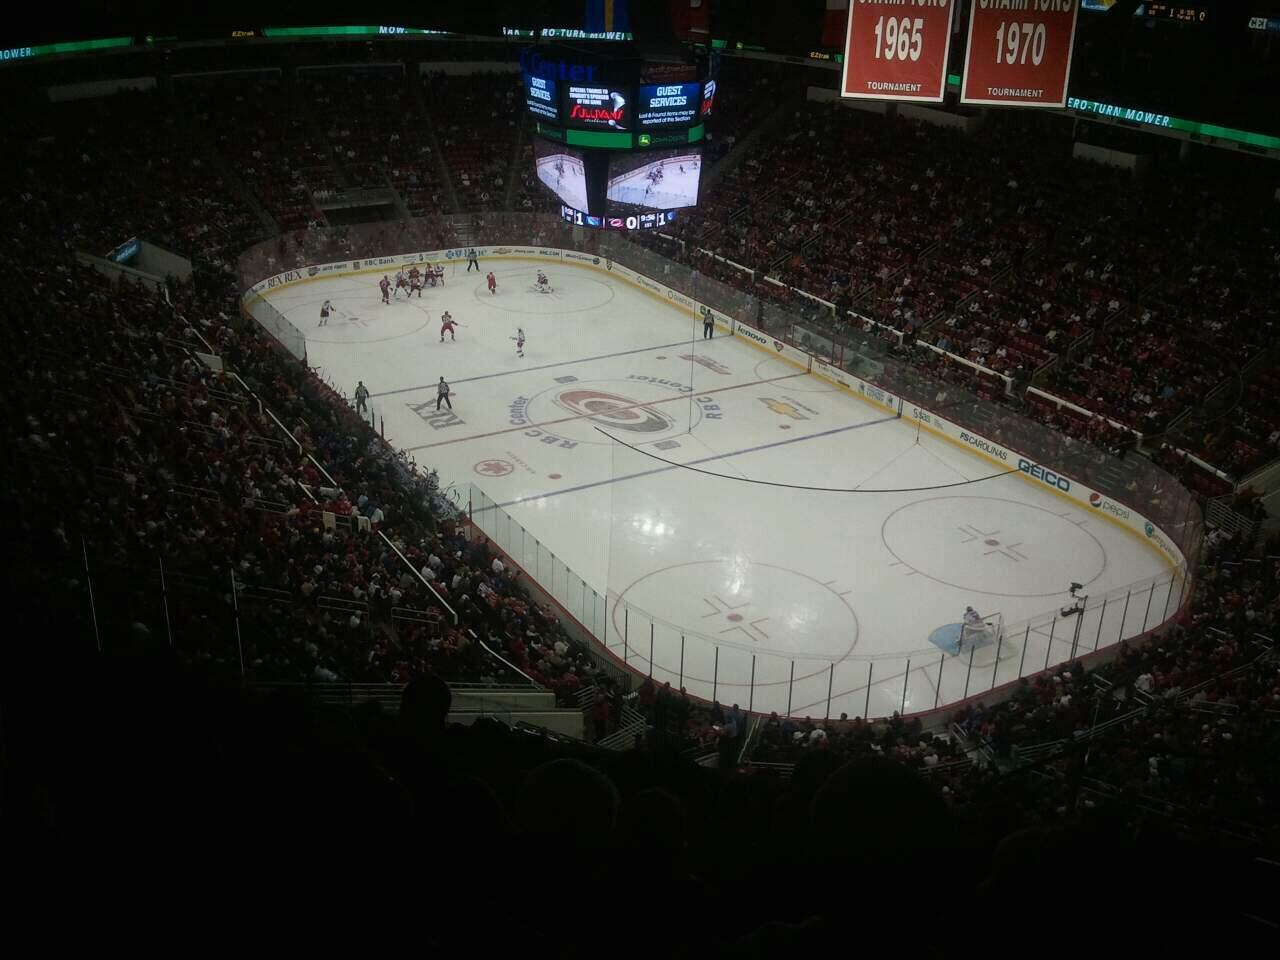 PNC Arena Section 336 Row L Seat 6